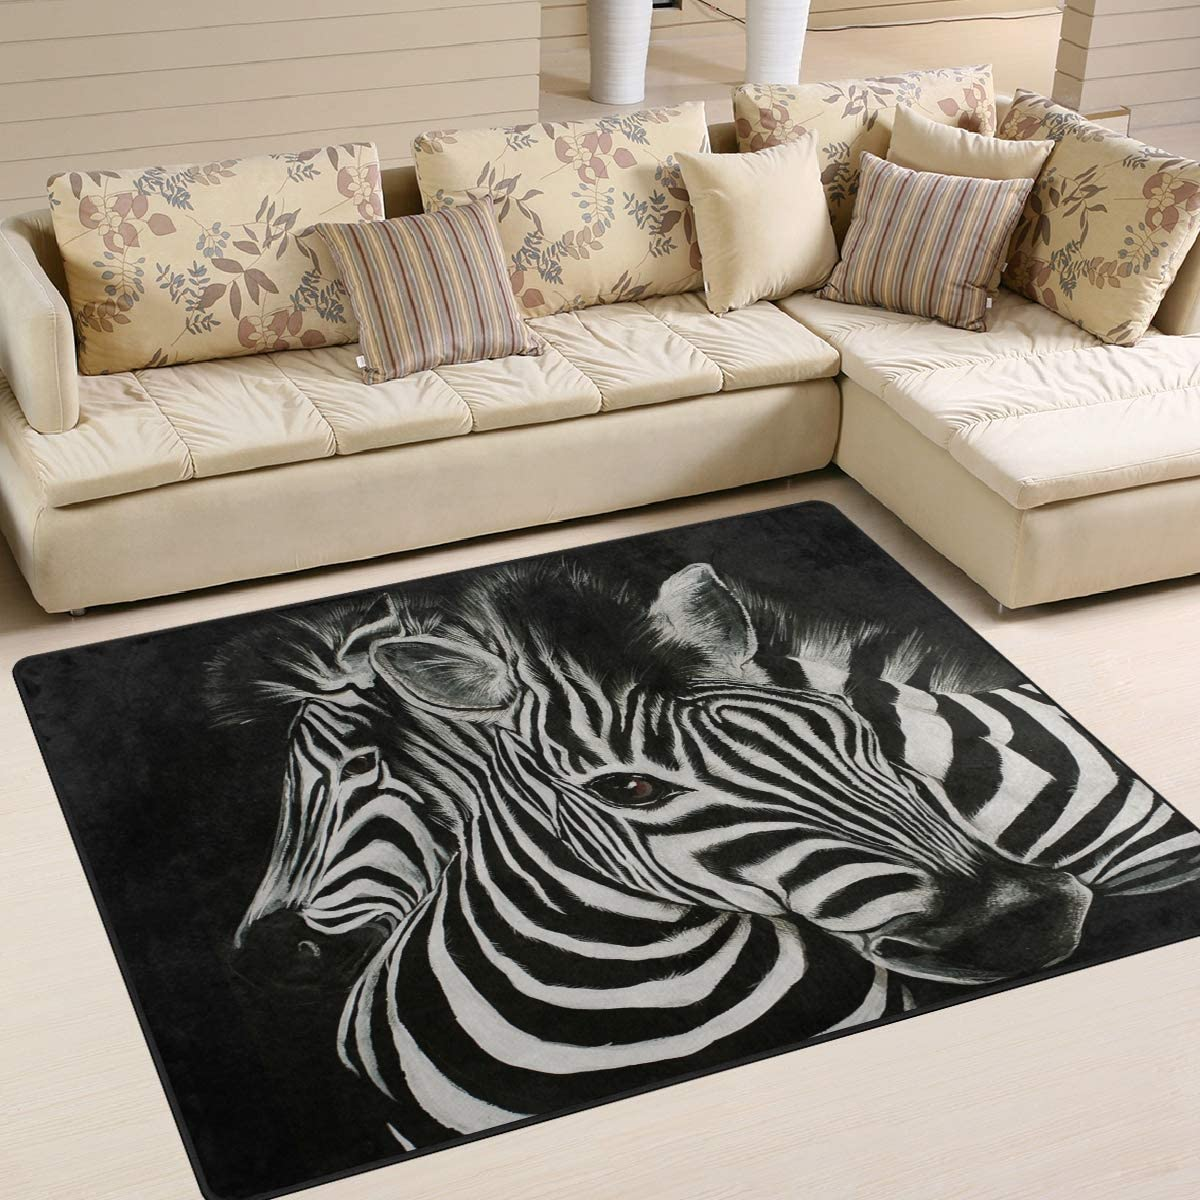 1.7 x 2.6 ft Naanle Animal Art Non Slip Area Rug for Living Dinning Room Bedroom Kitchen Animal Zebra Nursery Rug Floor Carpet Yoga Mat 50 x 80 cm